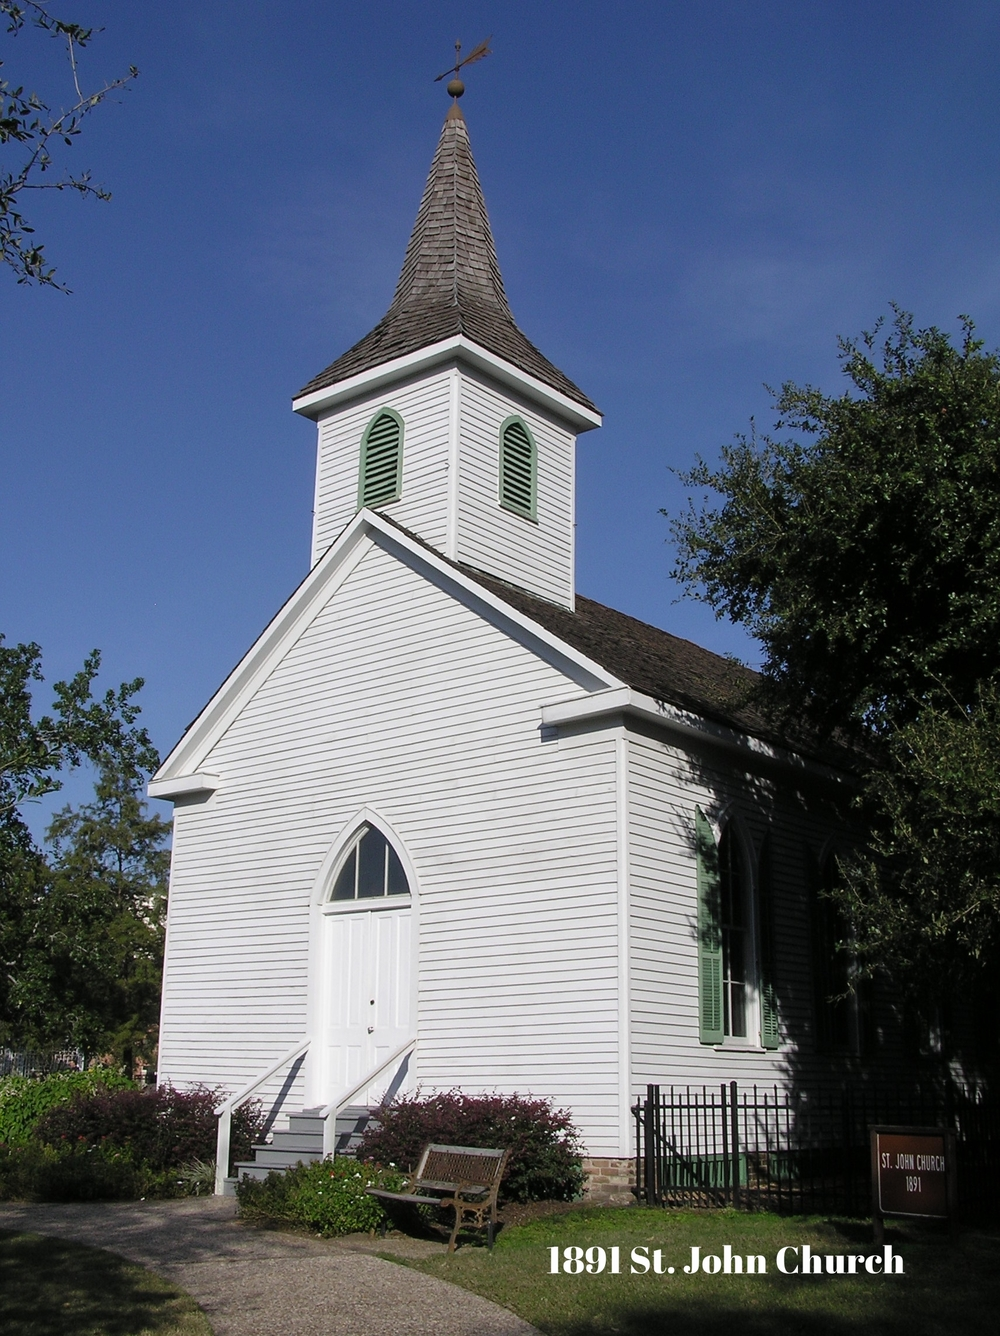 1891 St. John Church